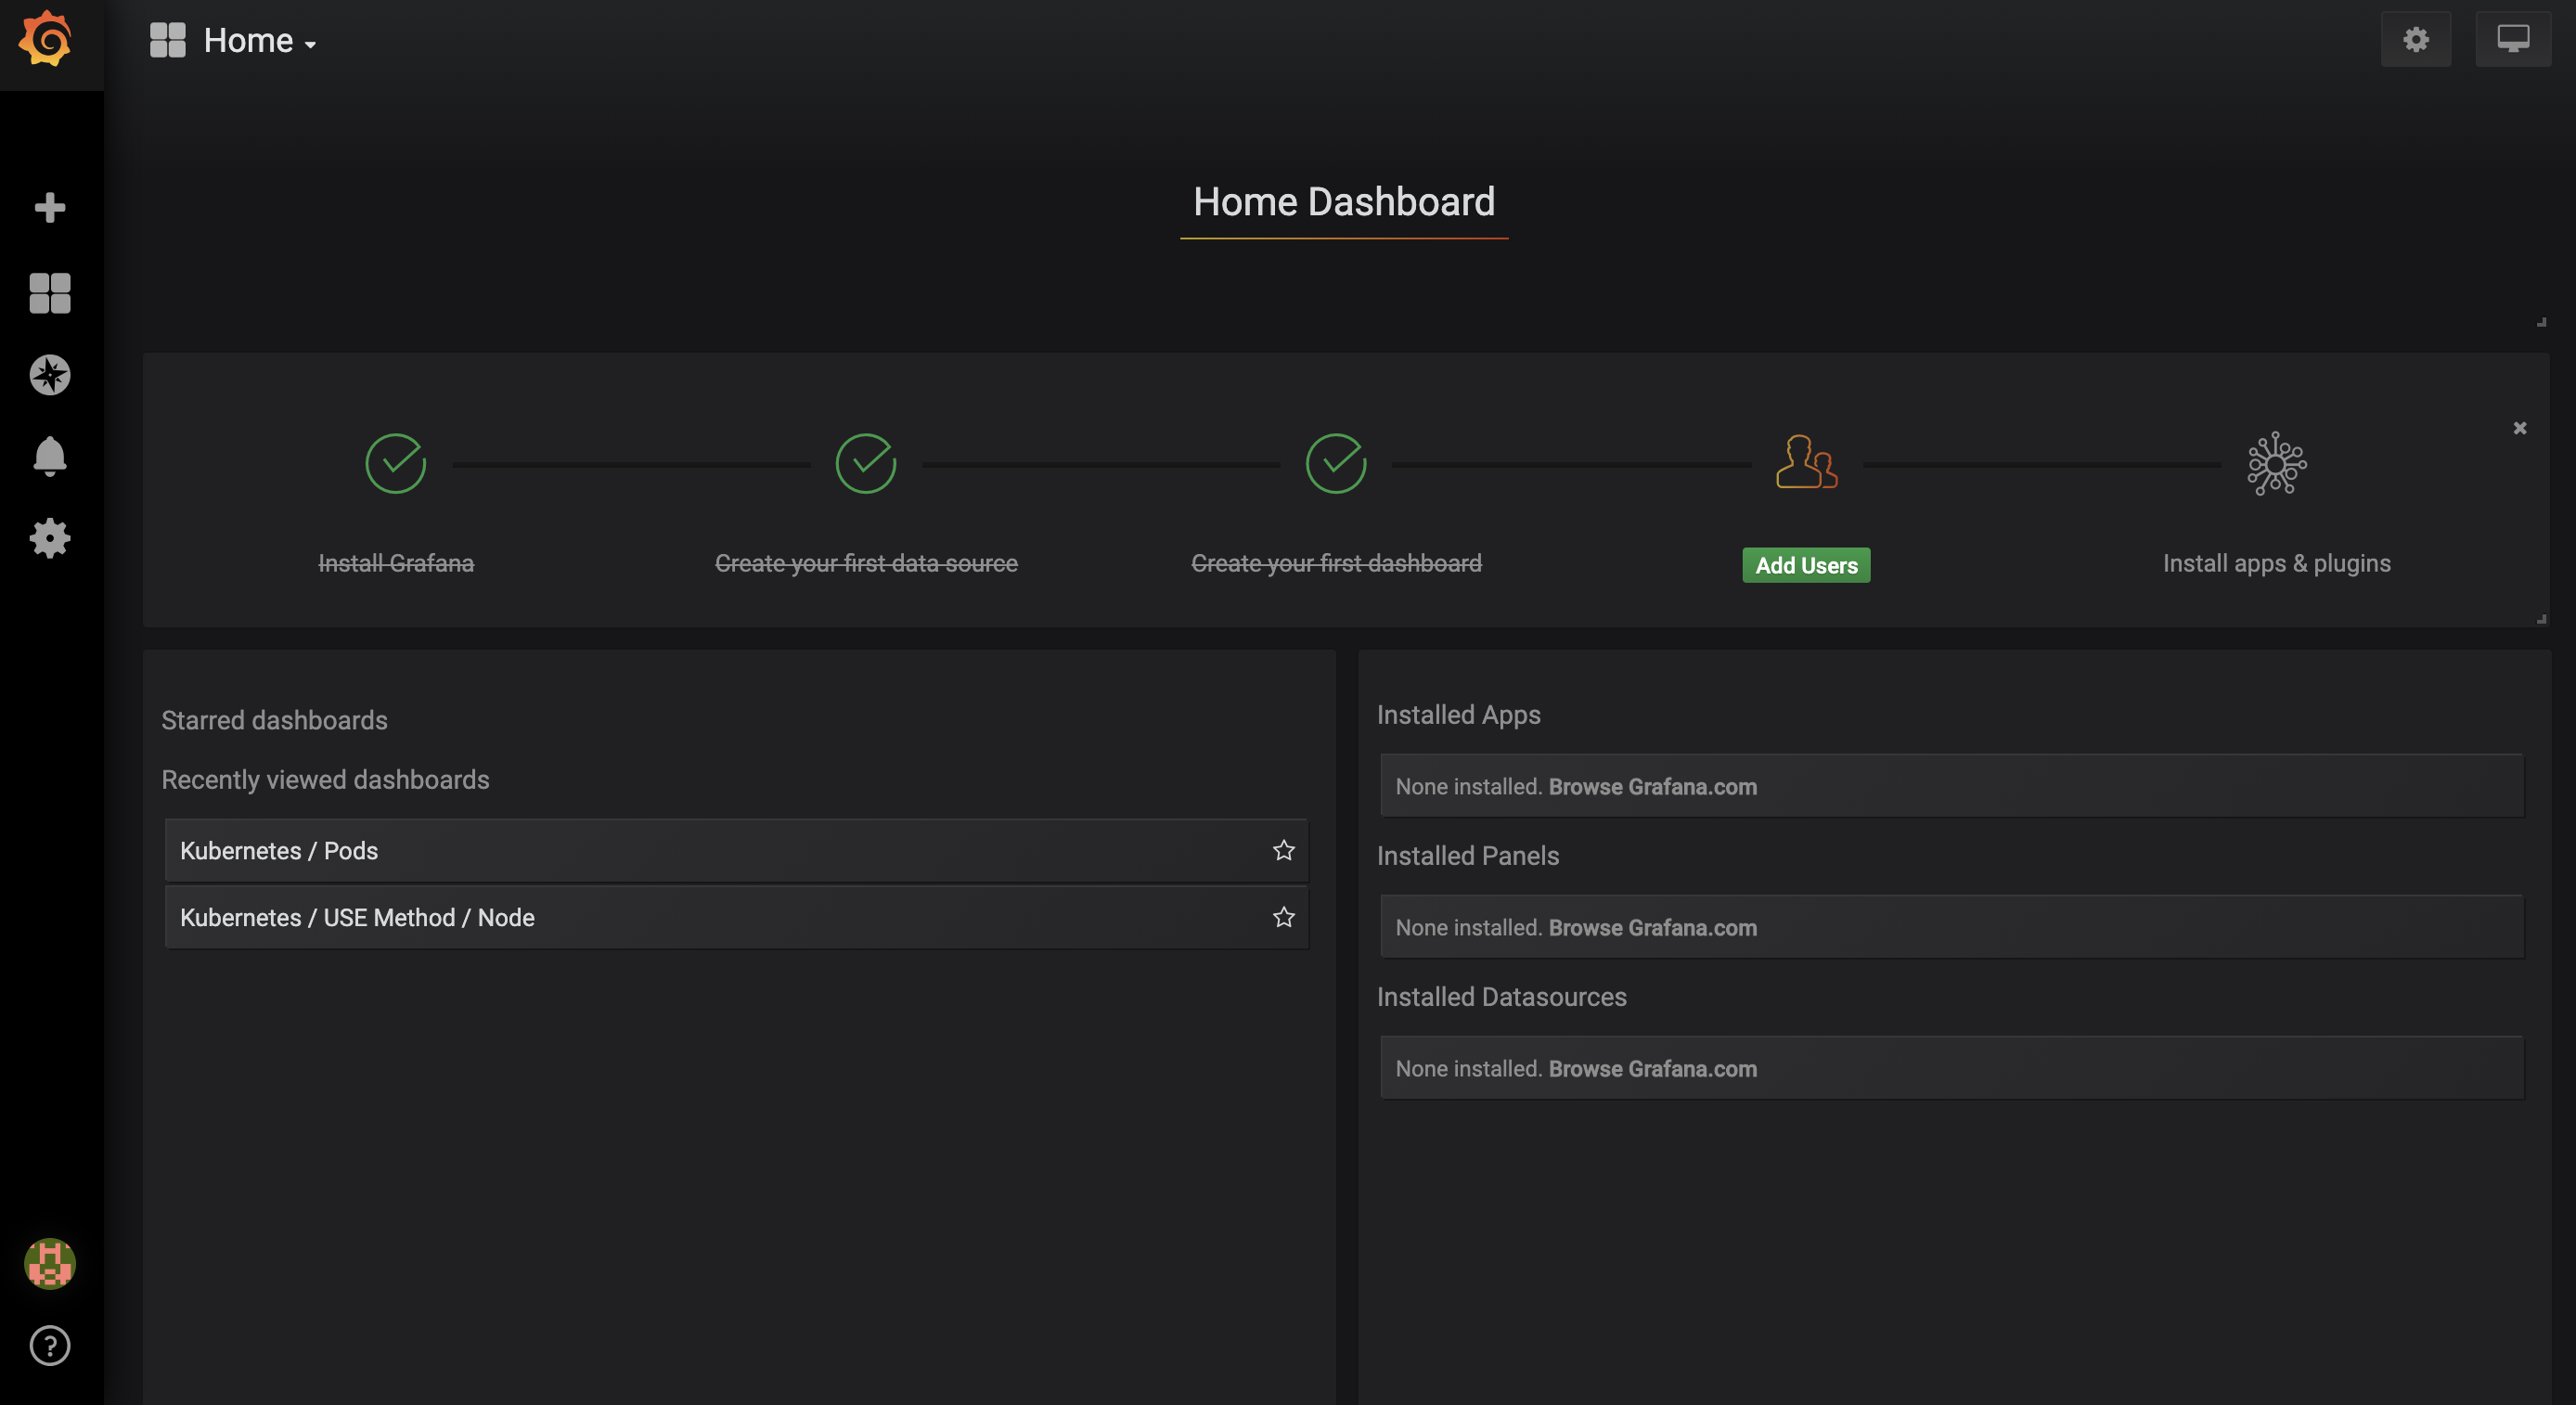 Grafana Home Page